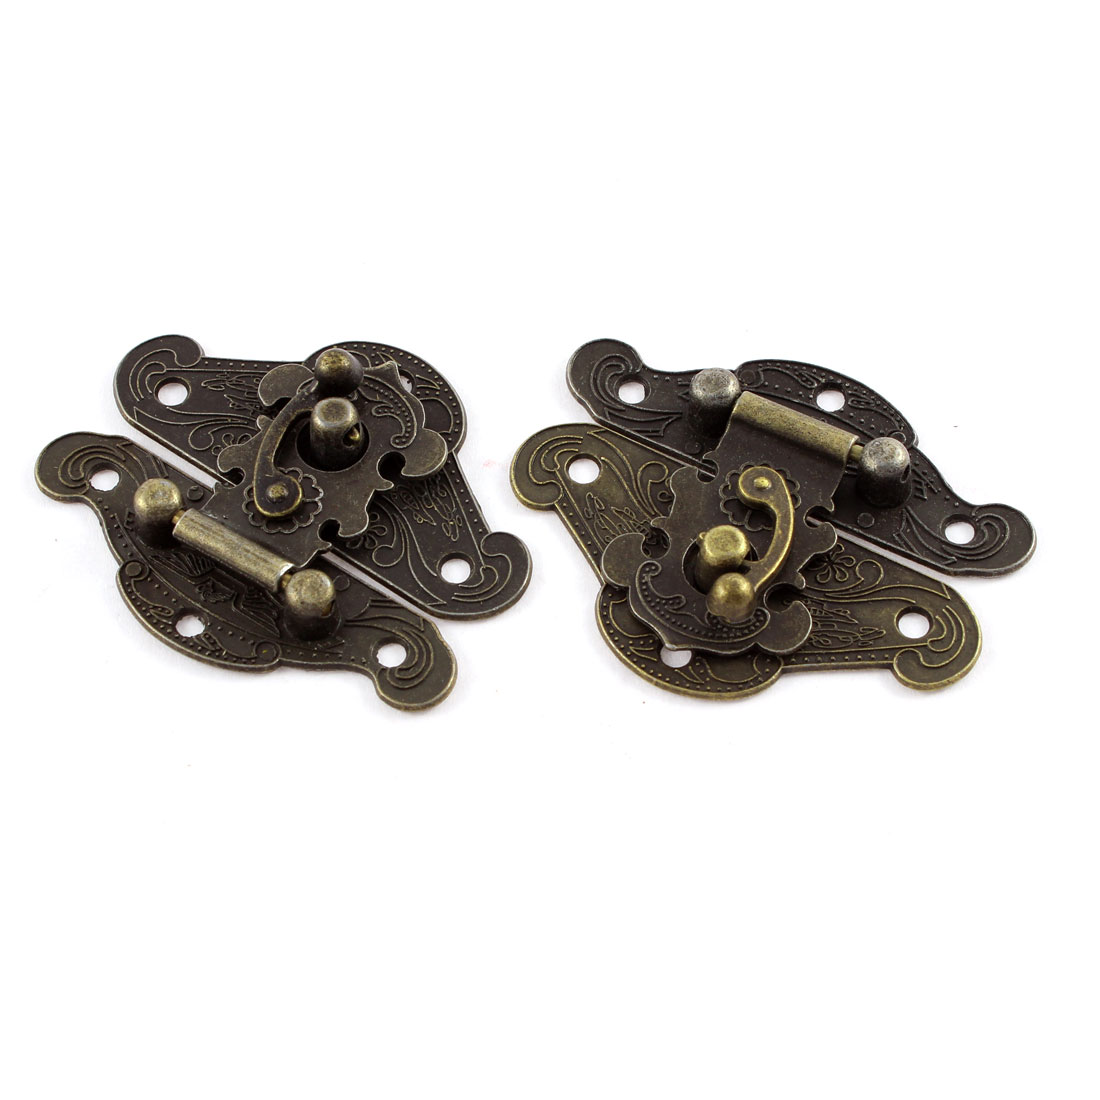 2pcs 66mmx54mm Retro Style Bronze Tone Box Cabinet Hook Lock Lid Latch